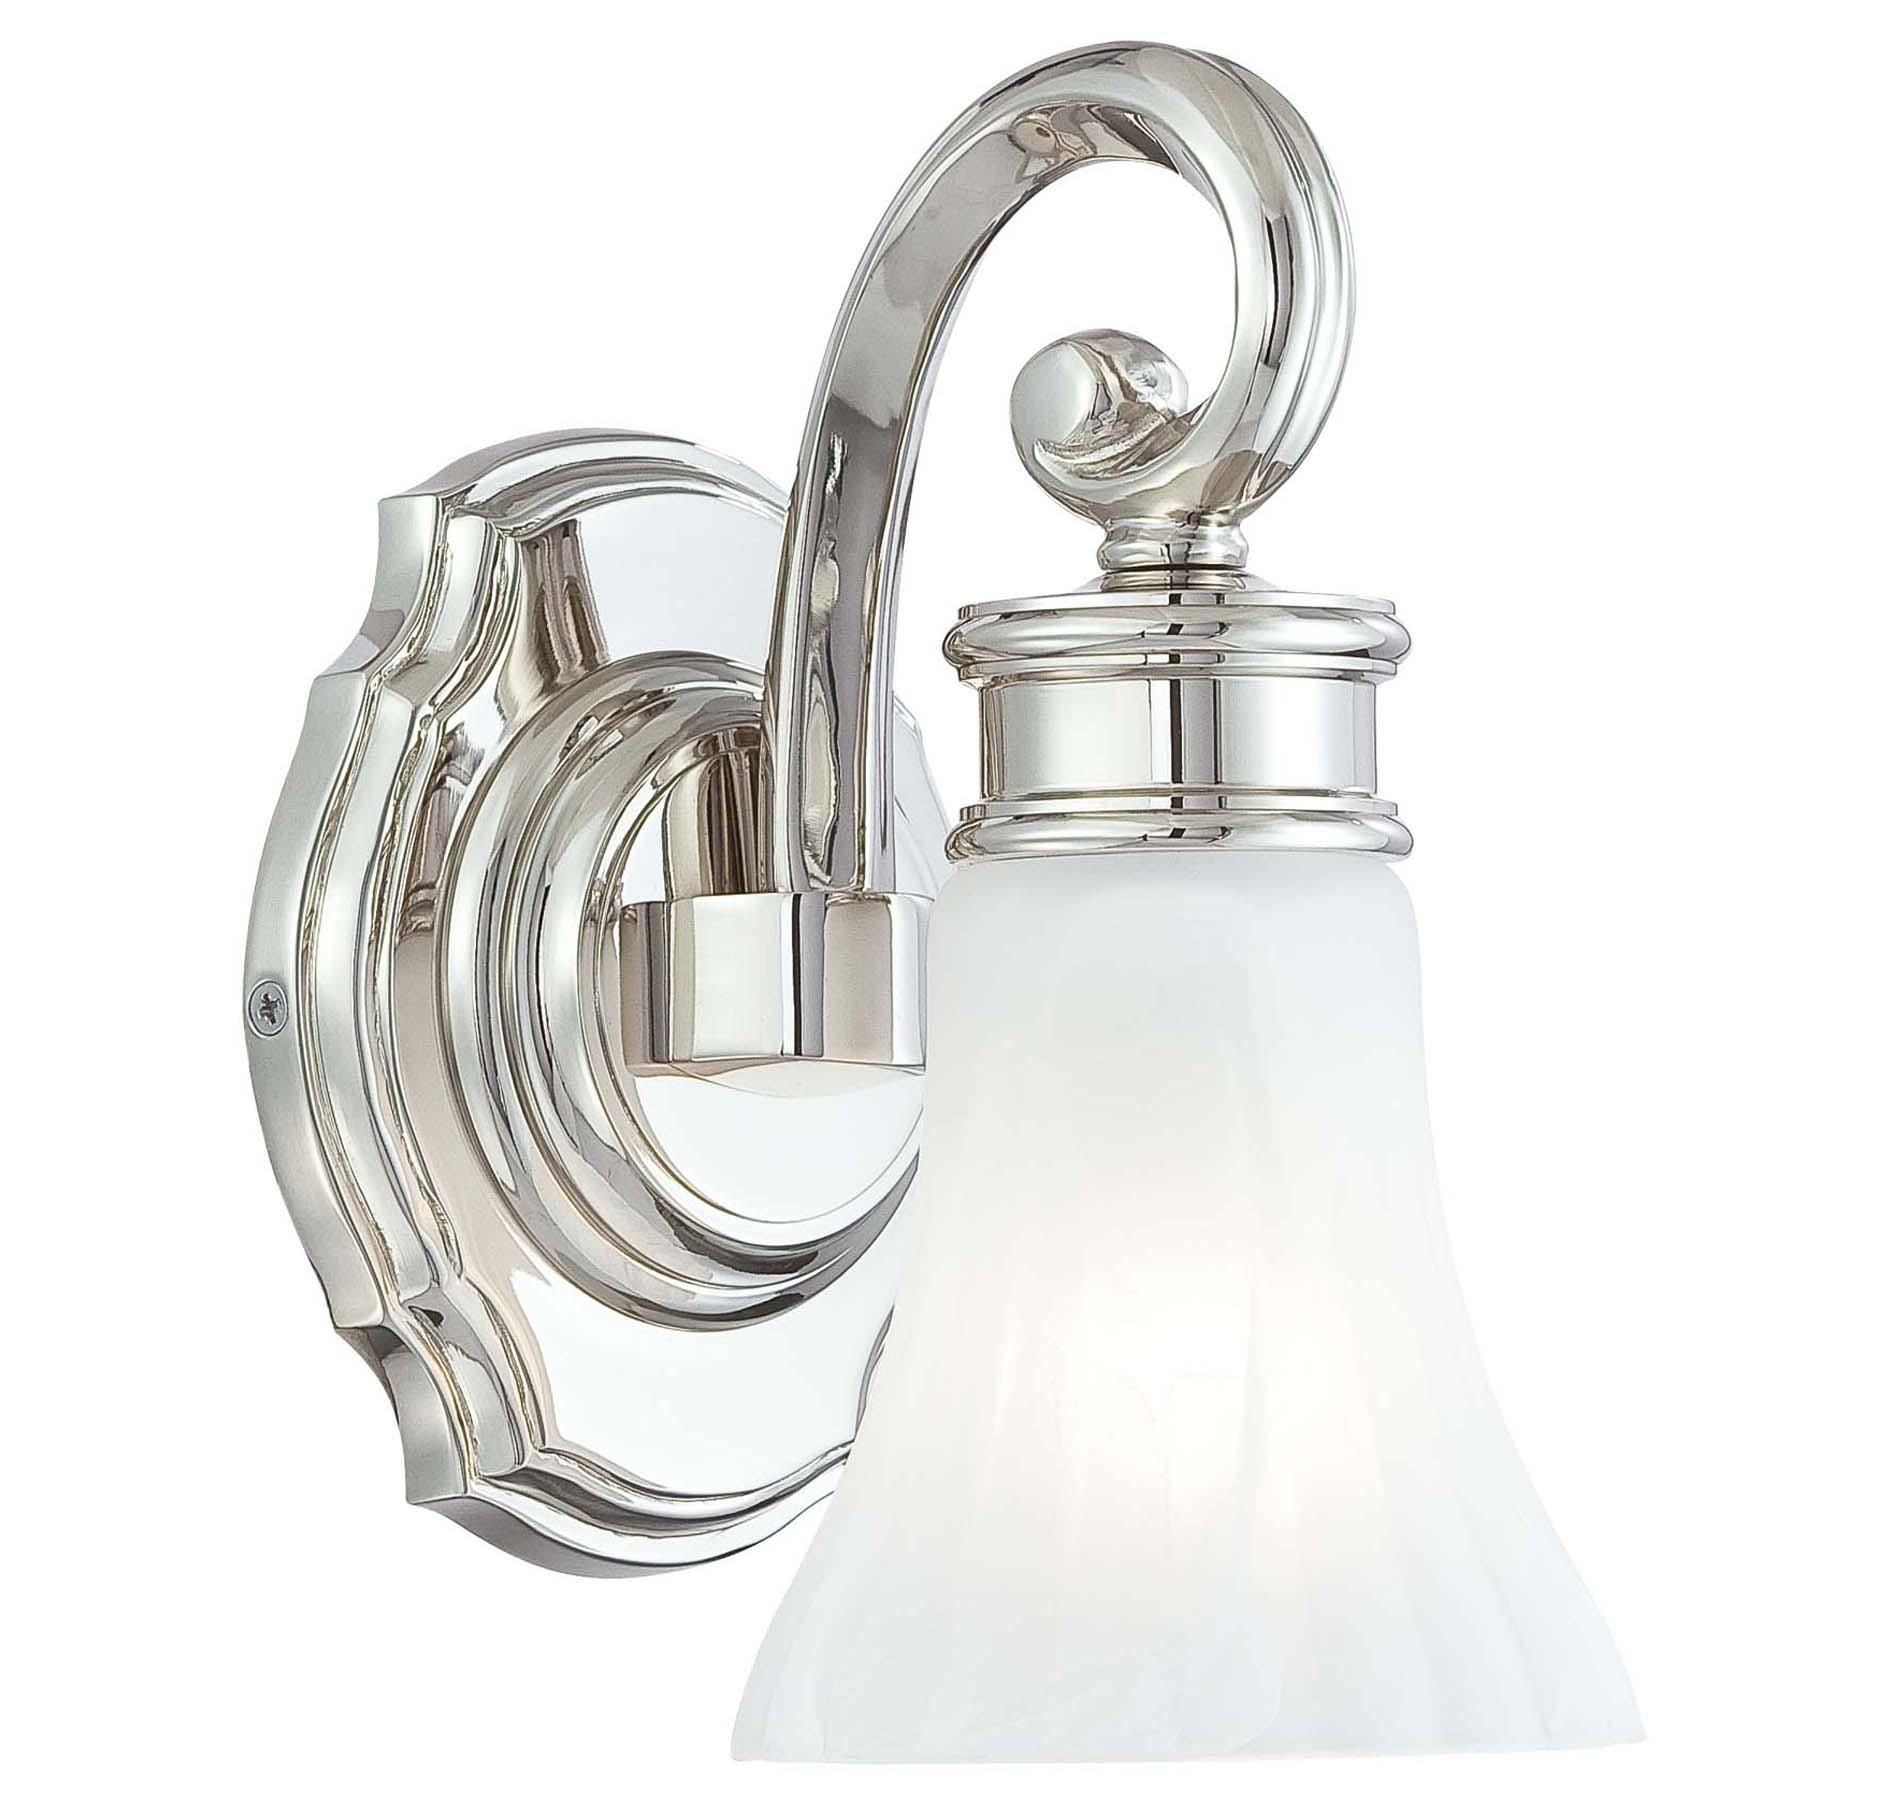 k - $210  Metropolitan European Collection Bath Light  SKU# N2841-613  Our Price: $70